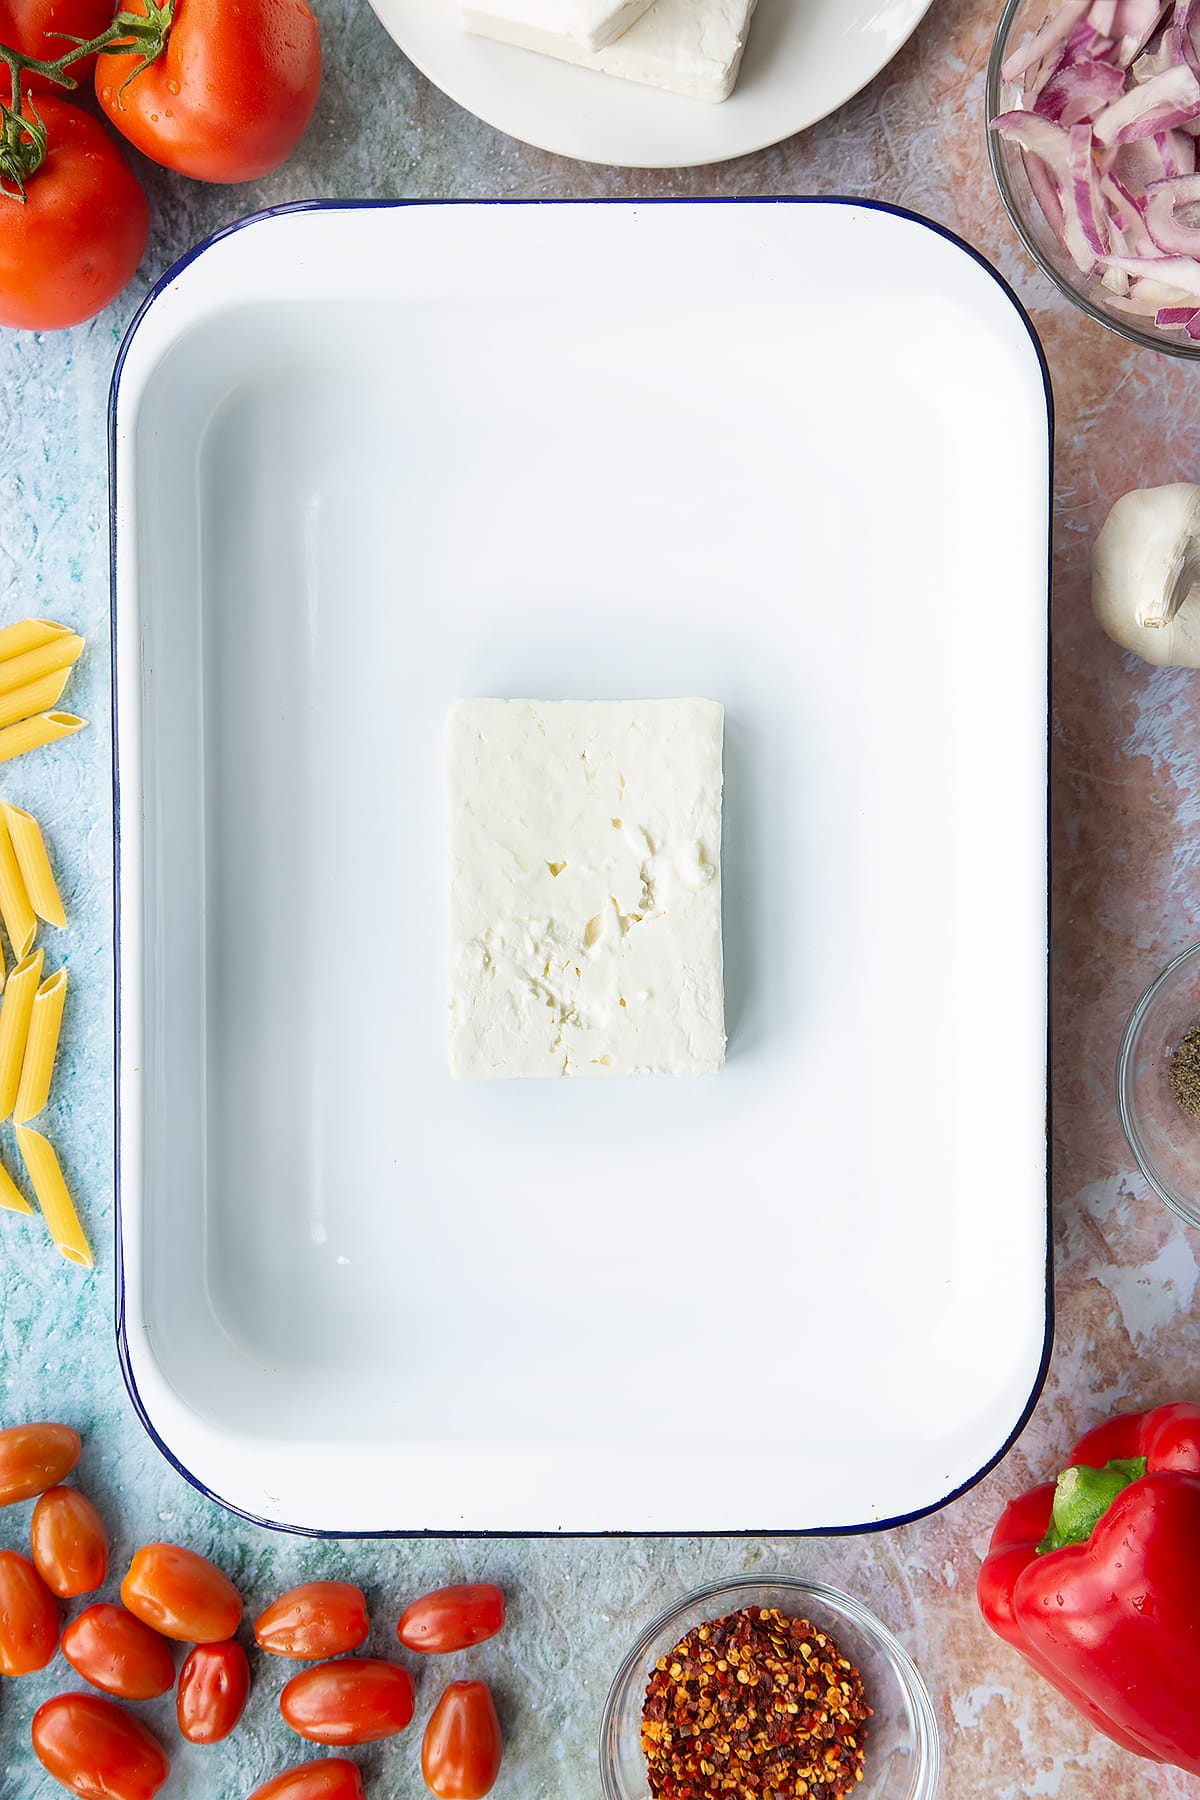 A block of feta in a large white roasting tray. Ingredients to make baked feta pasta surround the tray.